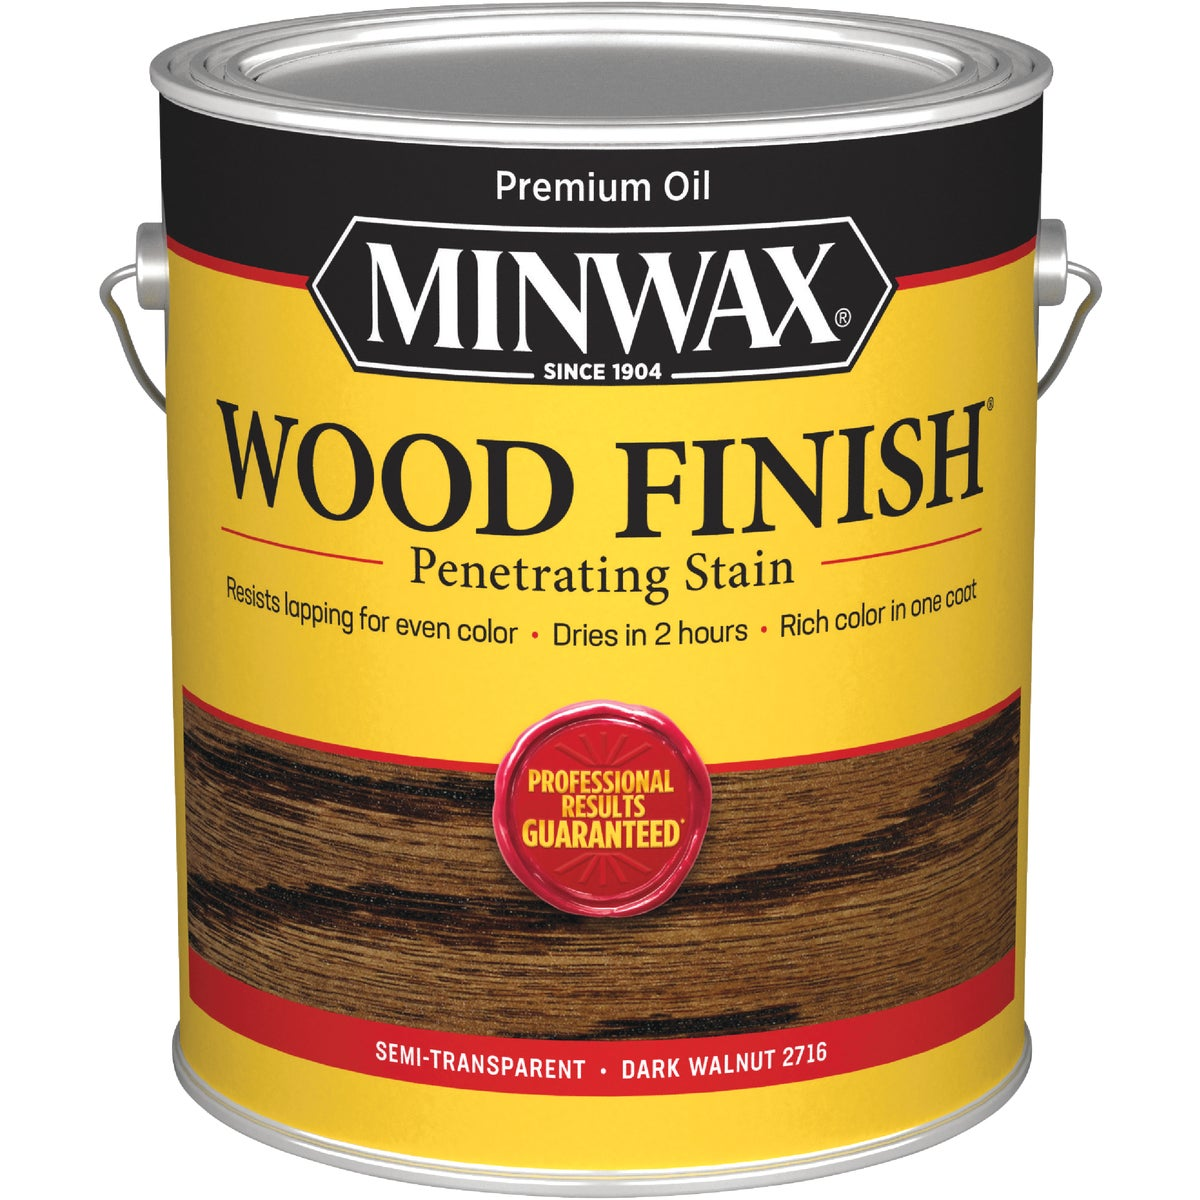 DARK WALNUT WOOD STAIN - 71012 by Minwax Company